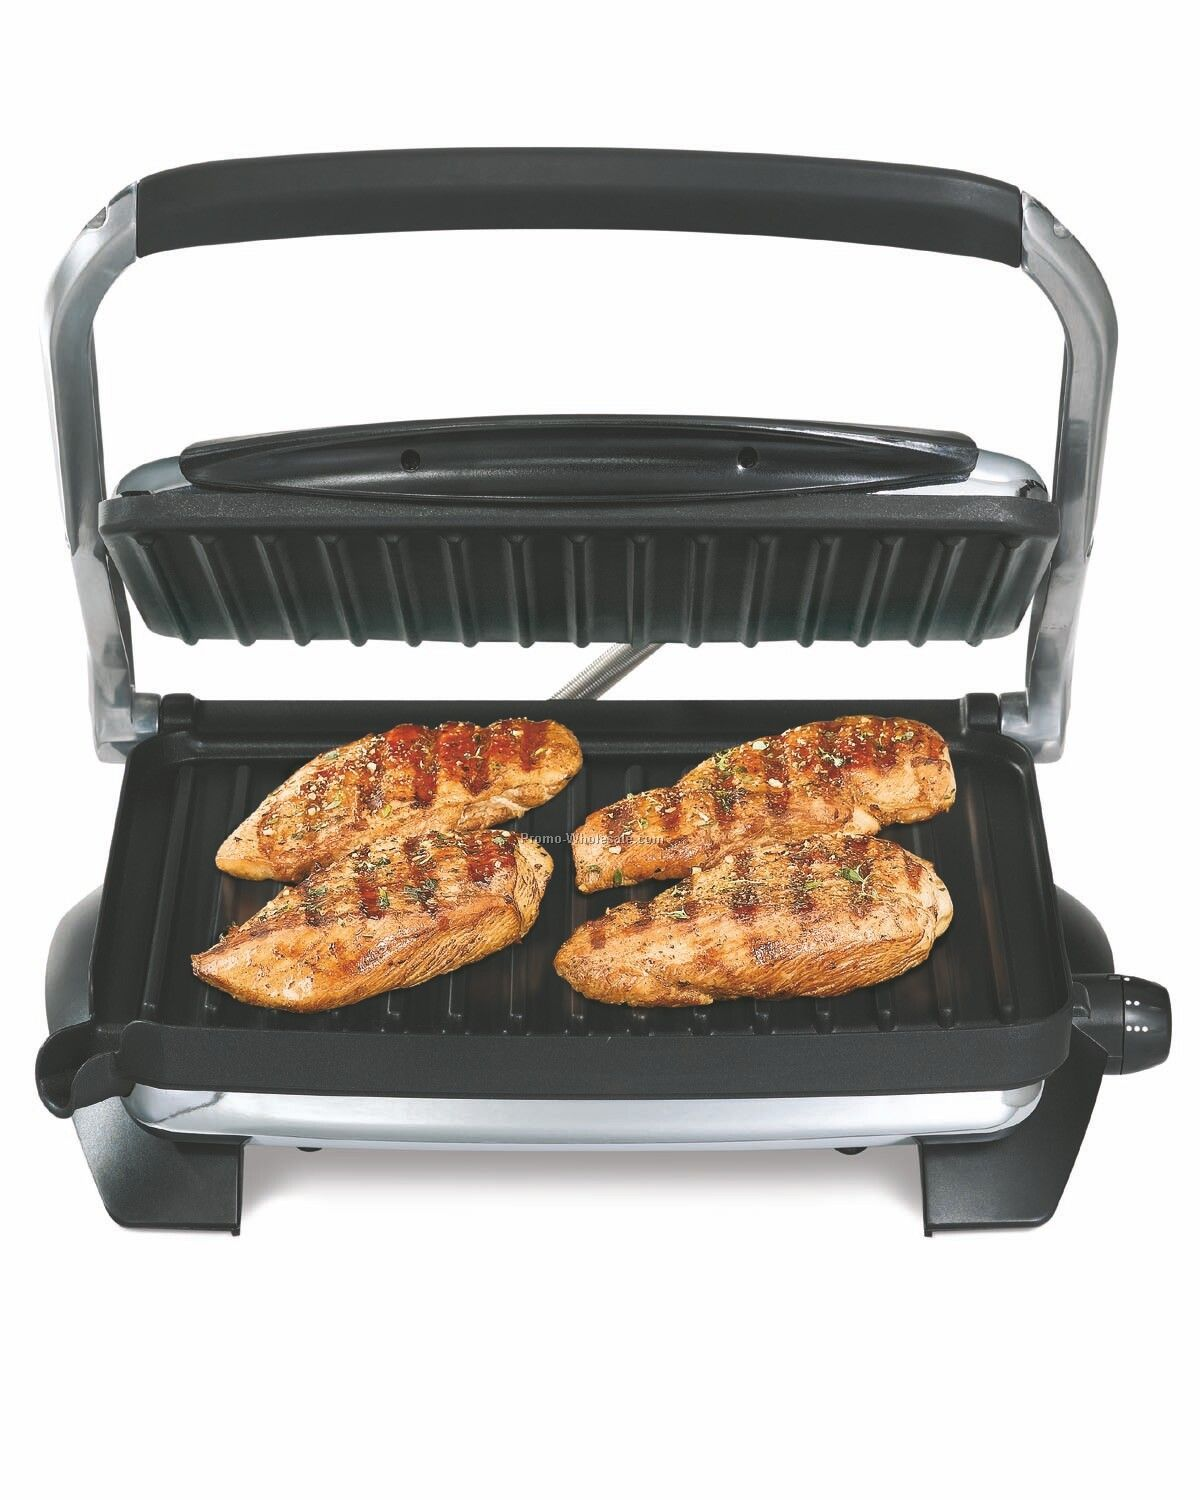 hamilton beach indoor grill with panini press wholesale china. Black Bedroom Furniture Sets. Home Design Ideas